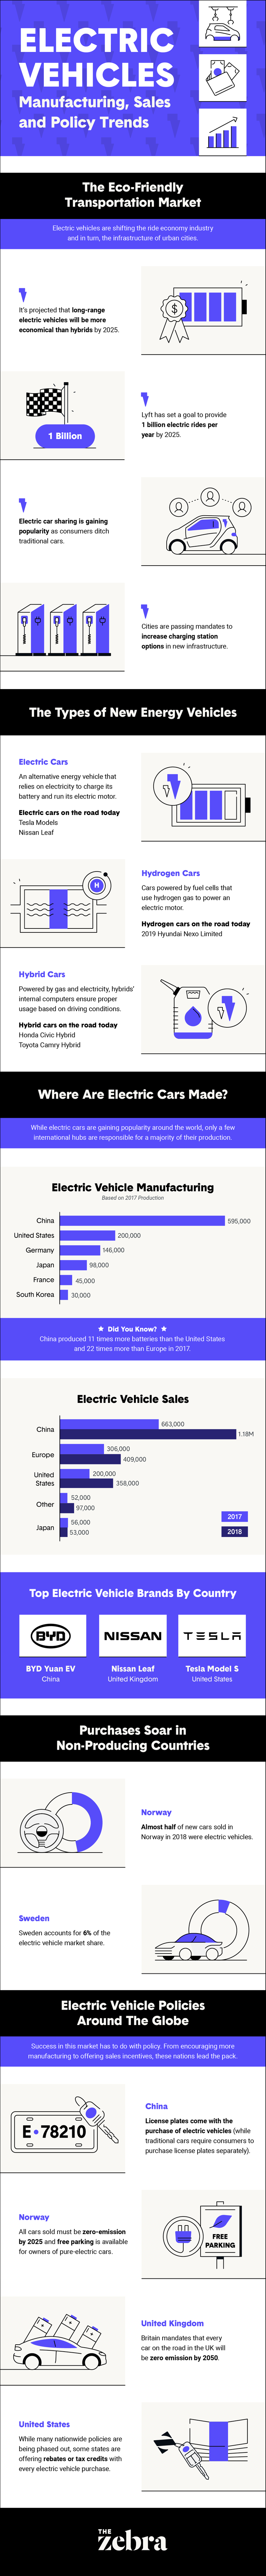 electric-vehicle-trends